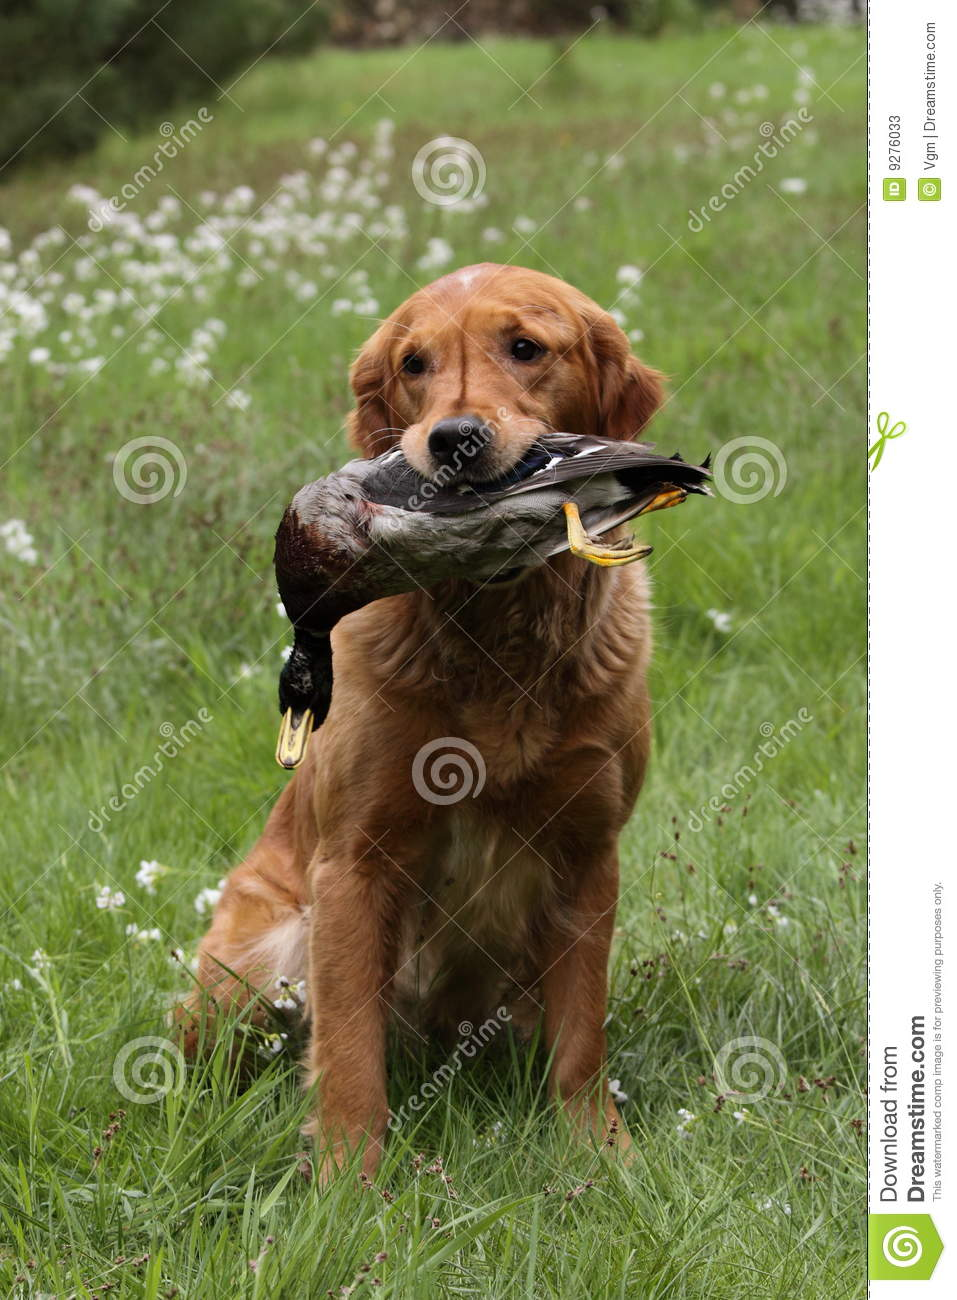 Golden Retriever Hunting Stock Photos - Image: 9276033